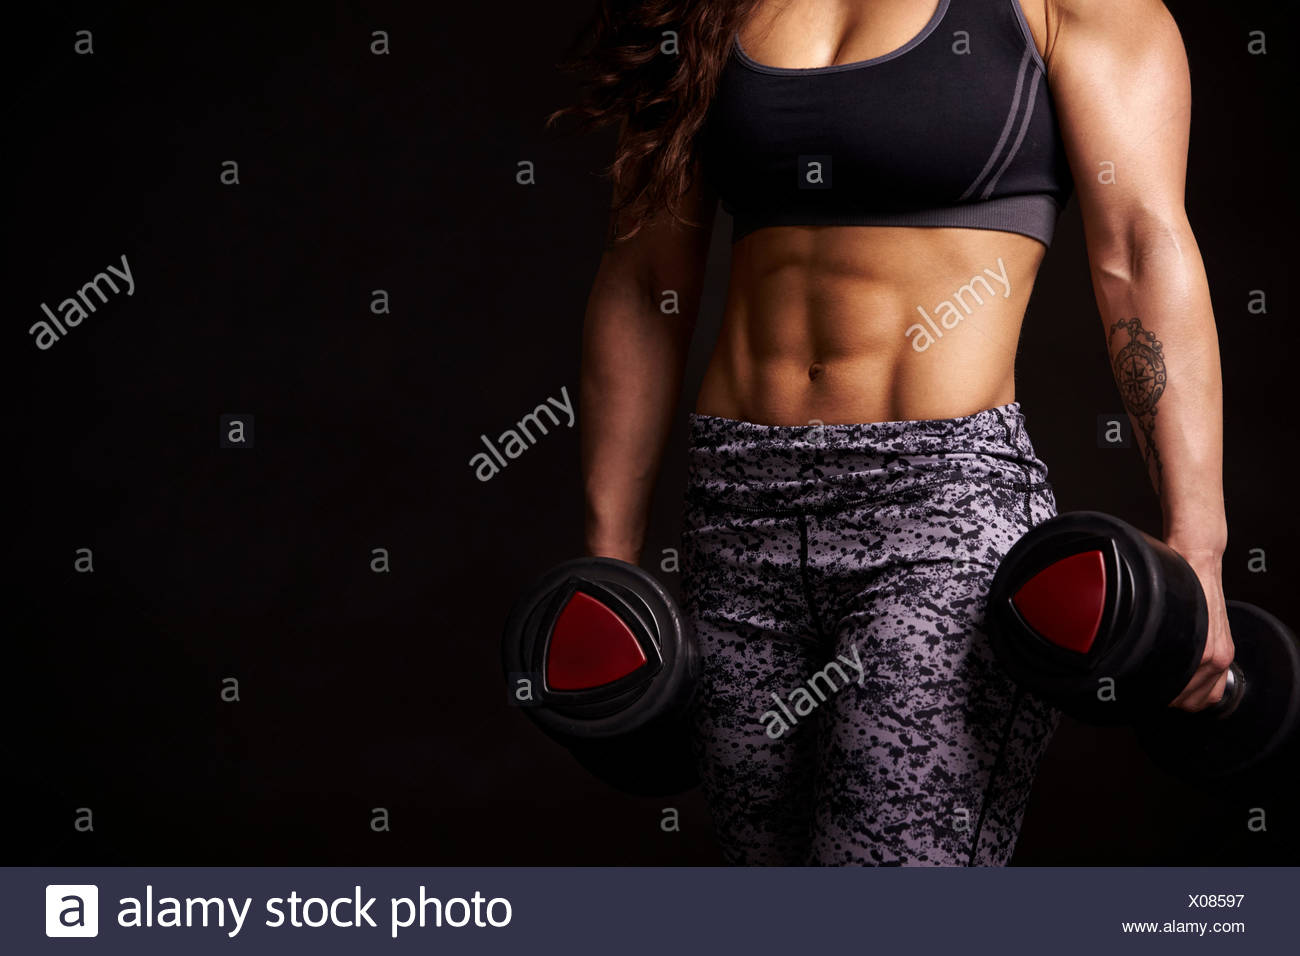 Muscular woman working out with dumbbells, mid-section crop - Stock Image